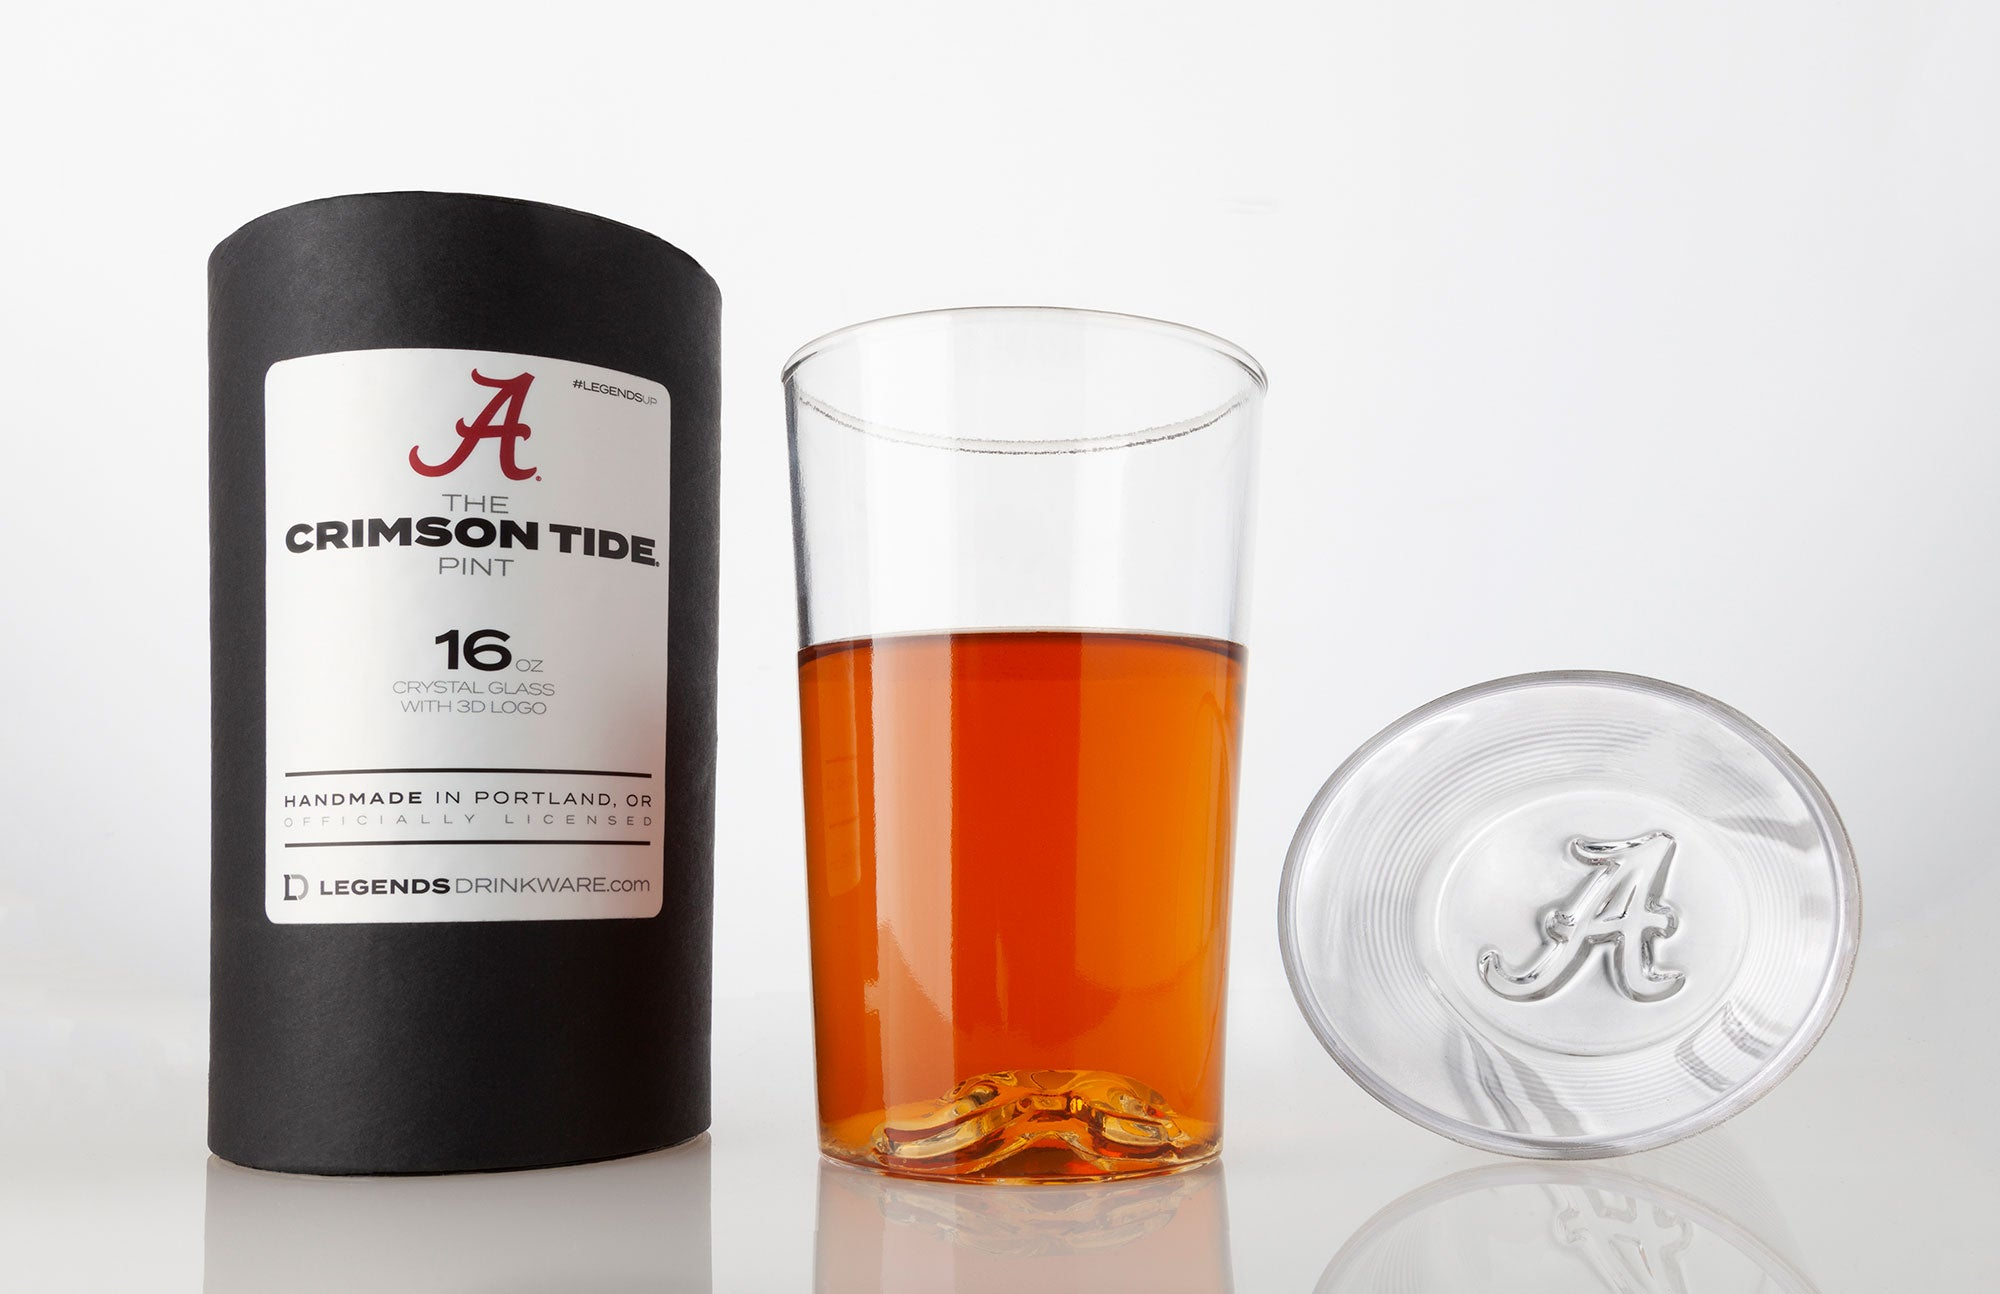 The Alabama Crimson Tide 16 oz Pint